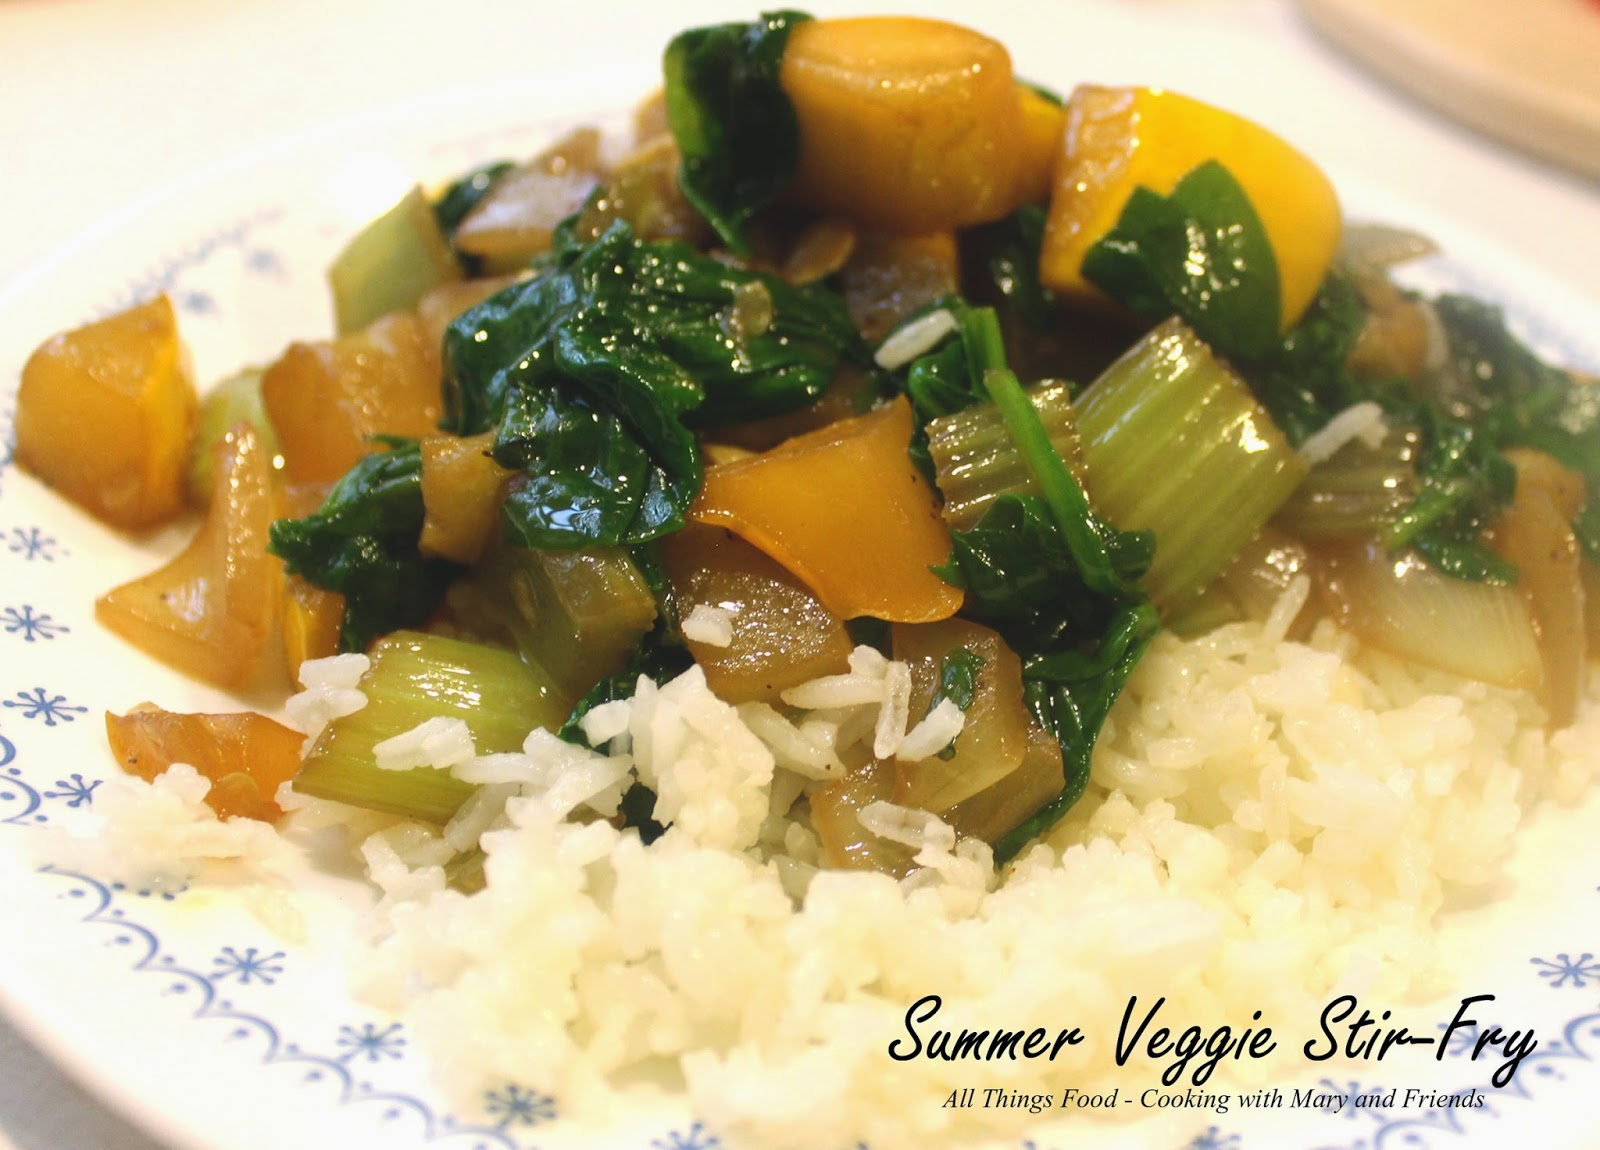 Cooking With Mary and Friends: Summer Veggie Stir-Fry